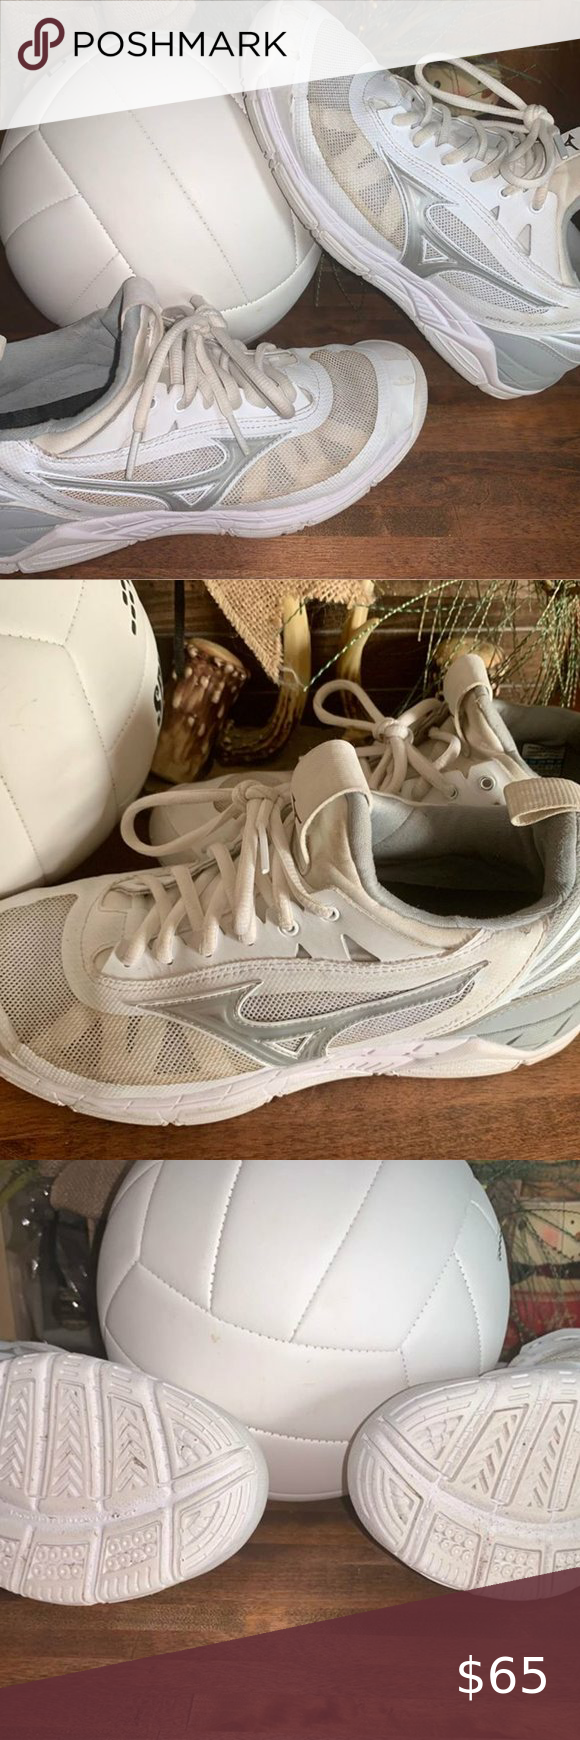 Mizuno Wave Luminous Volleyball Shoes In 2020 Volleyball Shoes Mizuno Shoes Mizuno